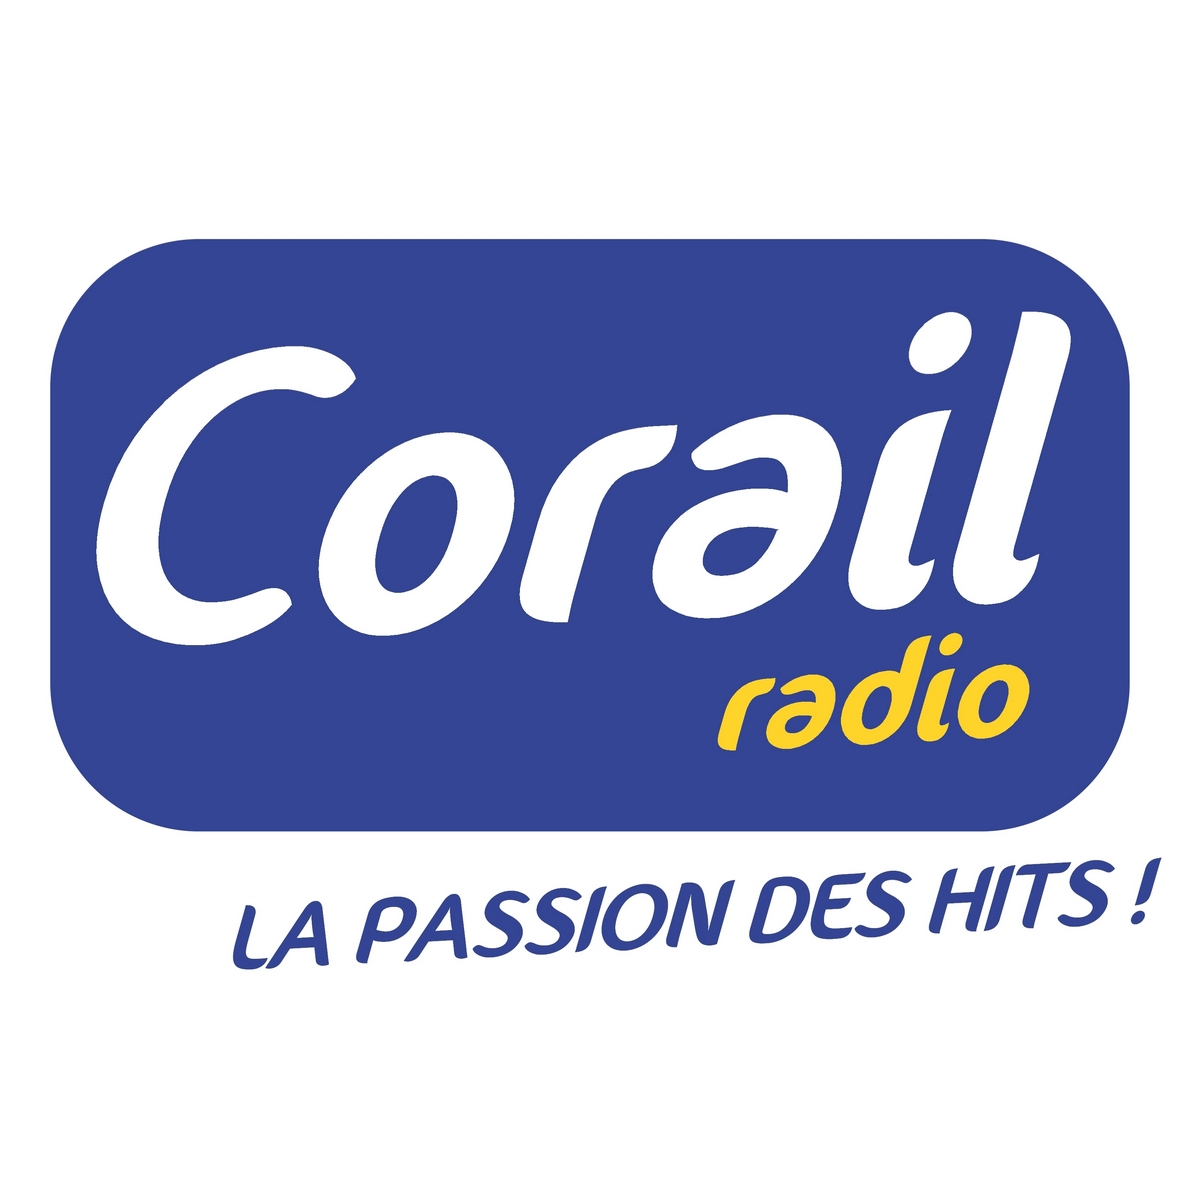 Association - CORAIL RADIO